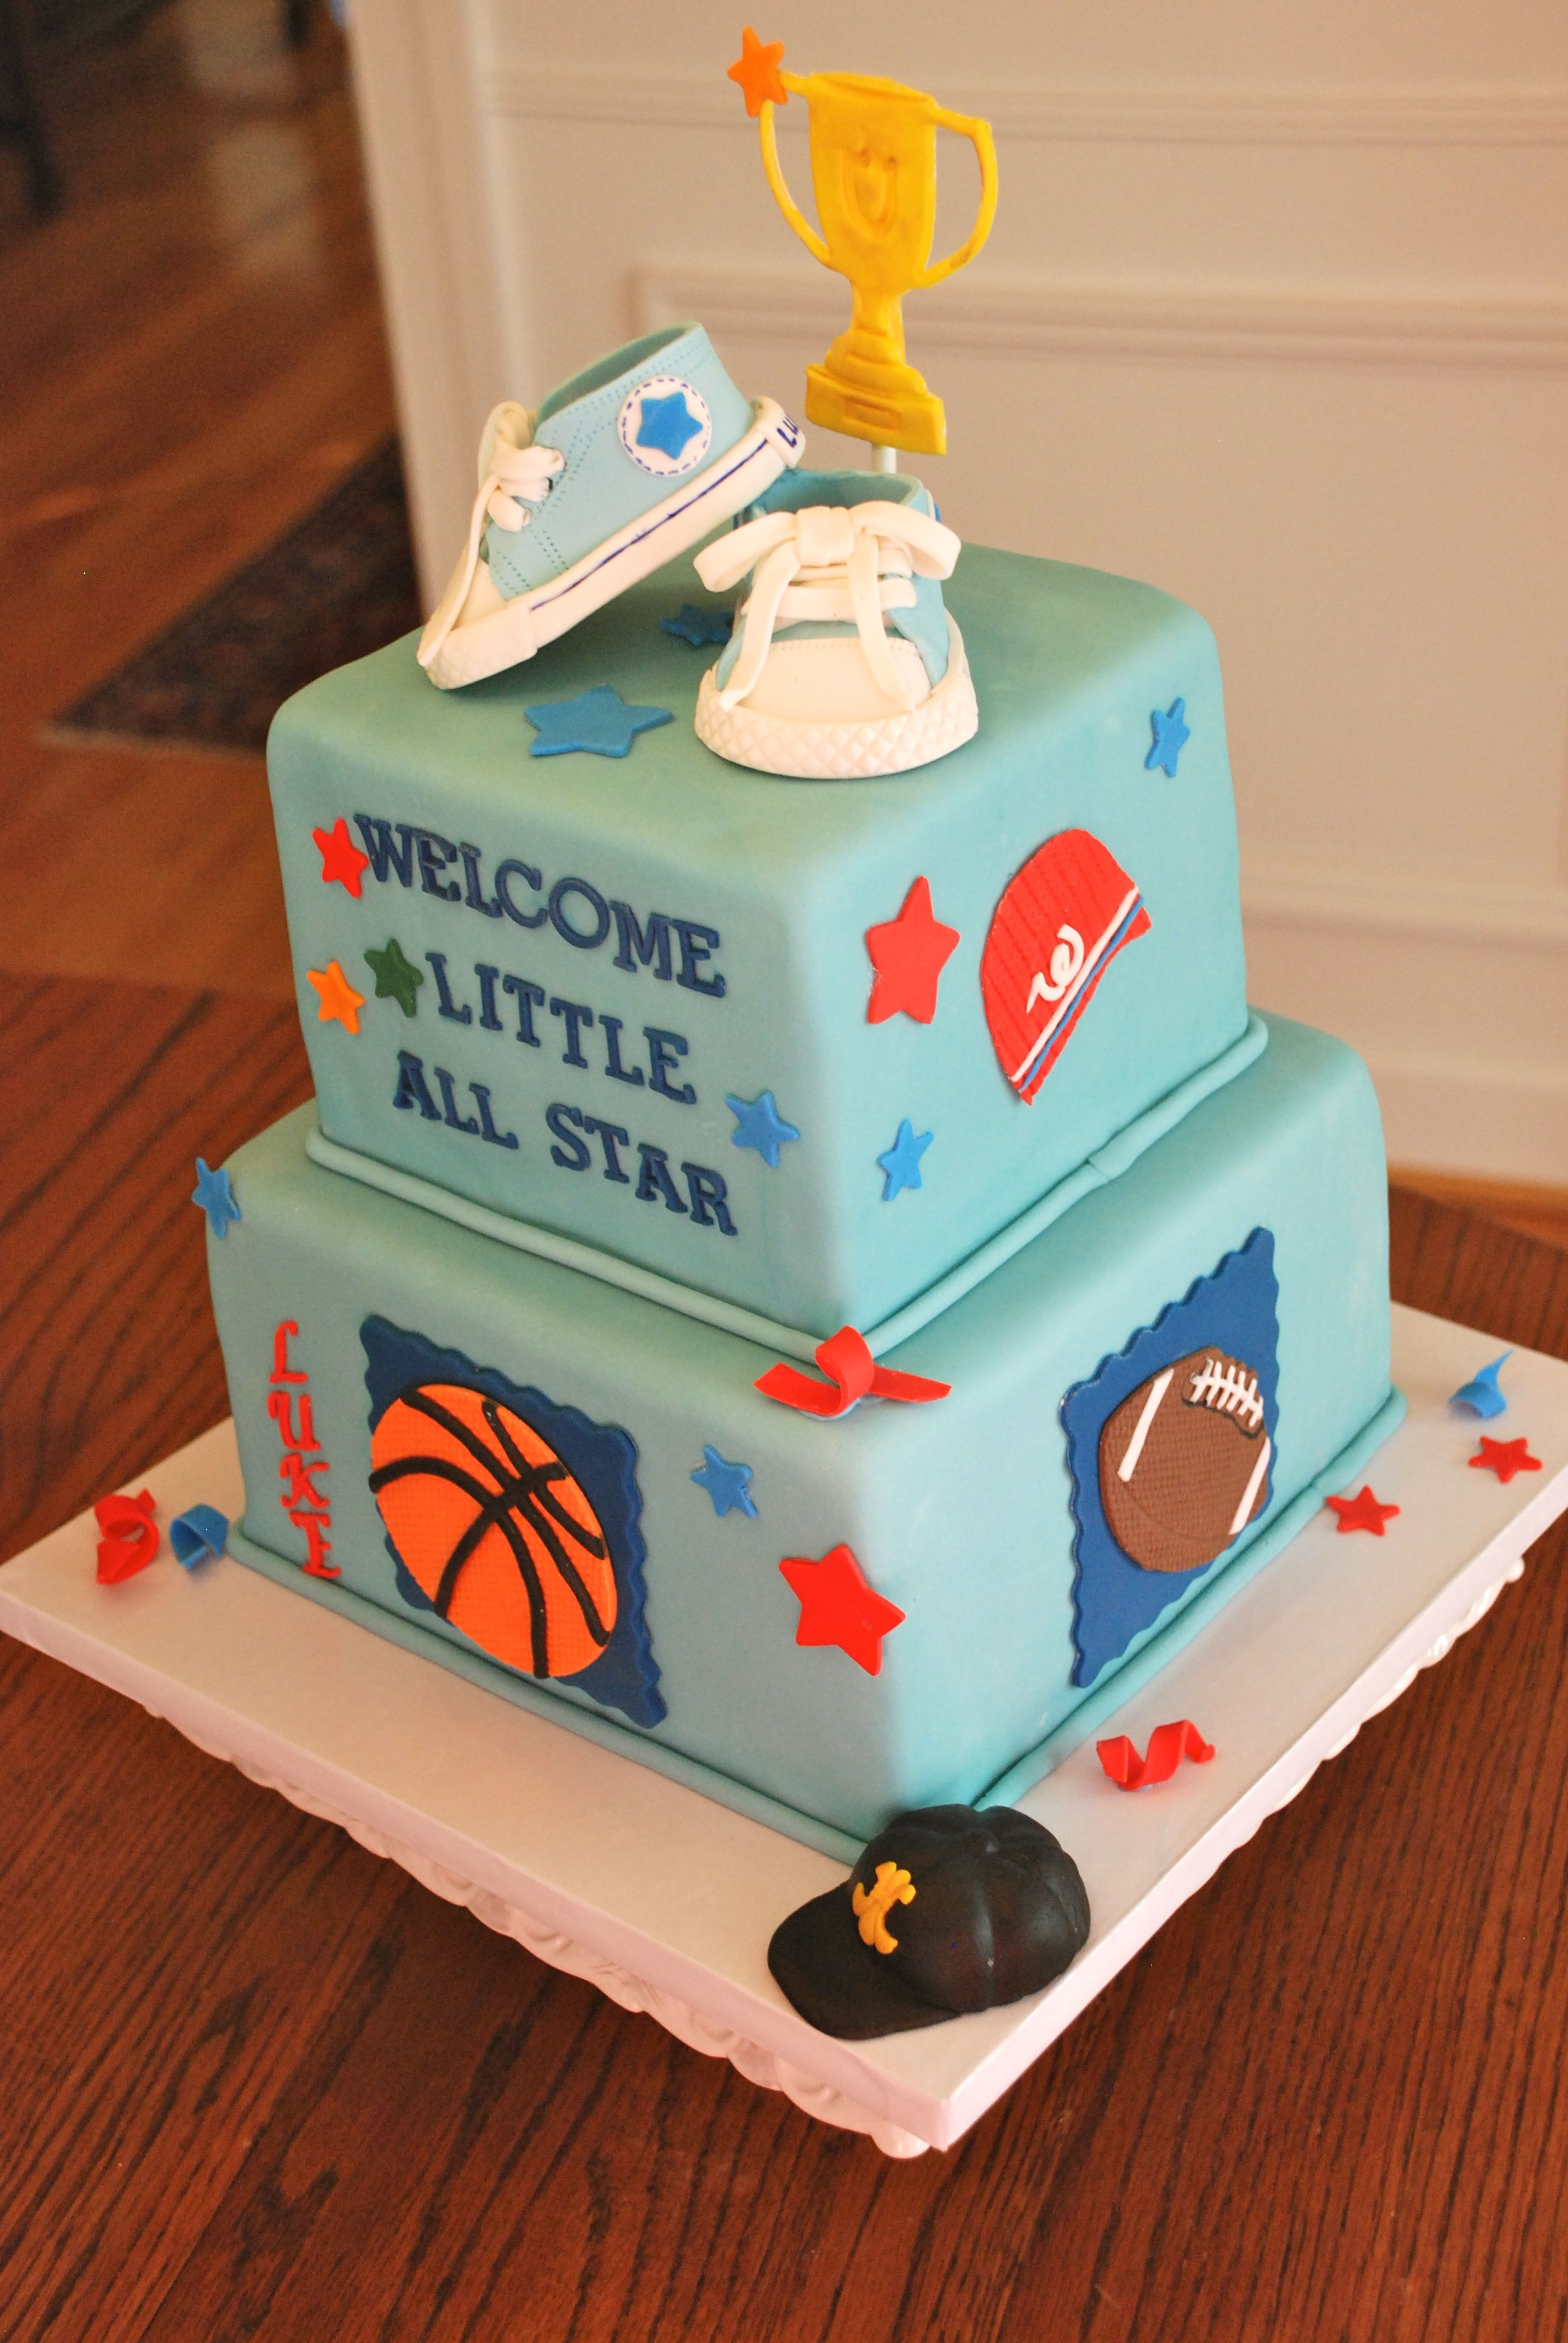 Little All Star Baby Shower Cake With Asst Sports Themes And Baby Keds Baby Boy Sports Sports Baby Shower